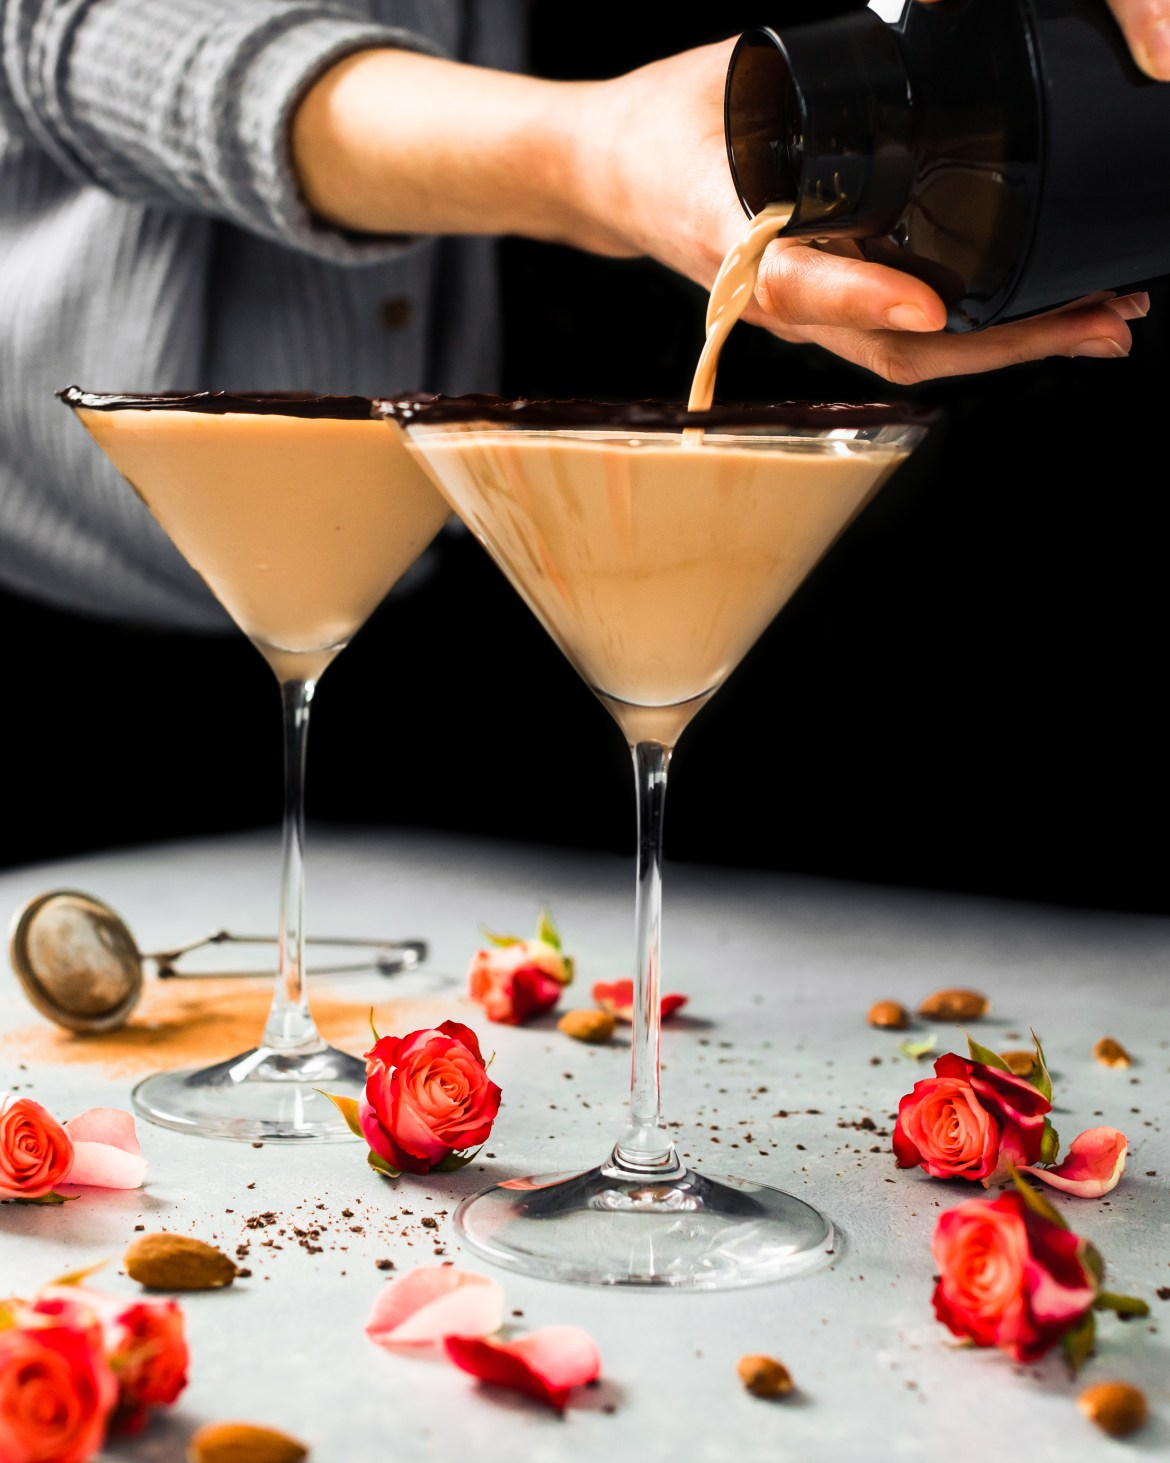 The best Chocolate Almond Martini for a special occasion